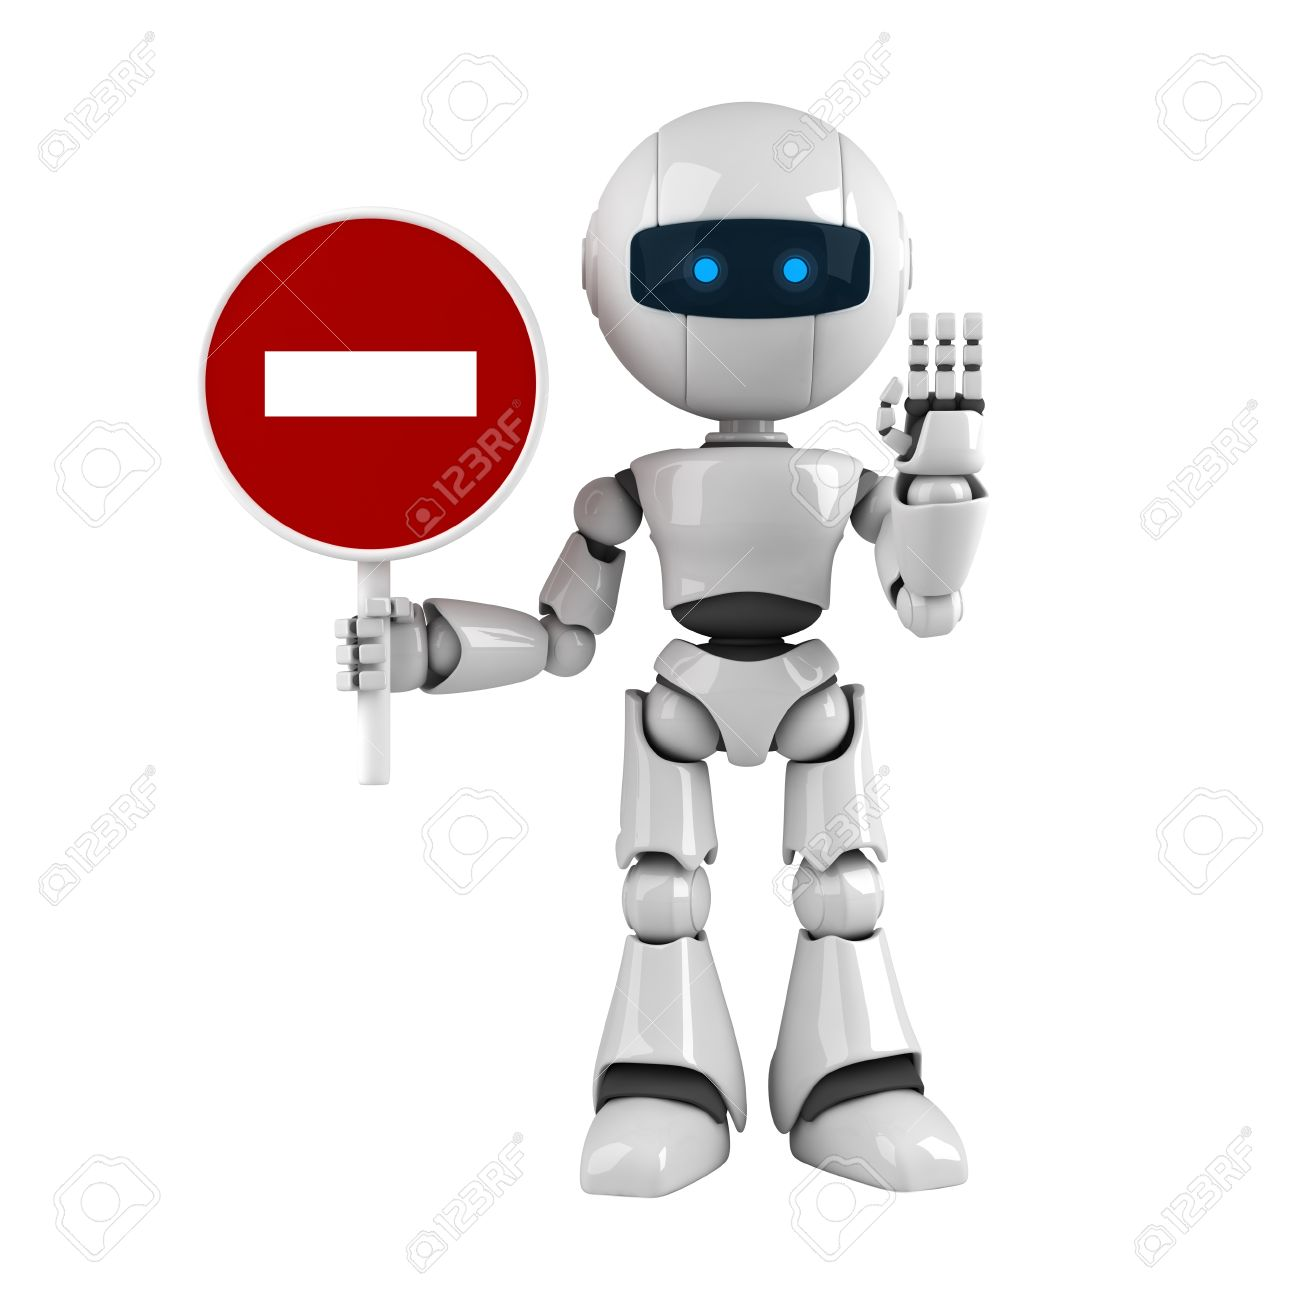 Funny robot stay with road sign and show stop Stock Photo - 10065426